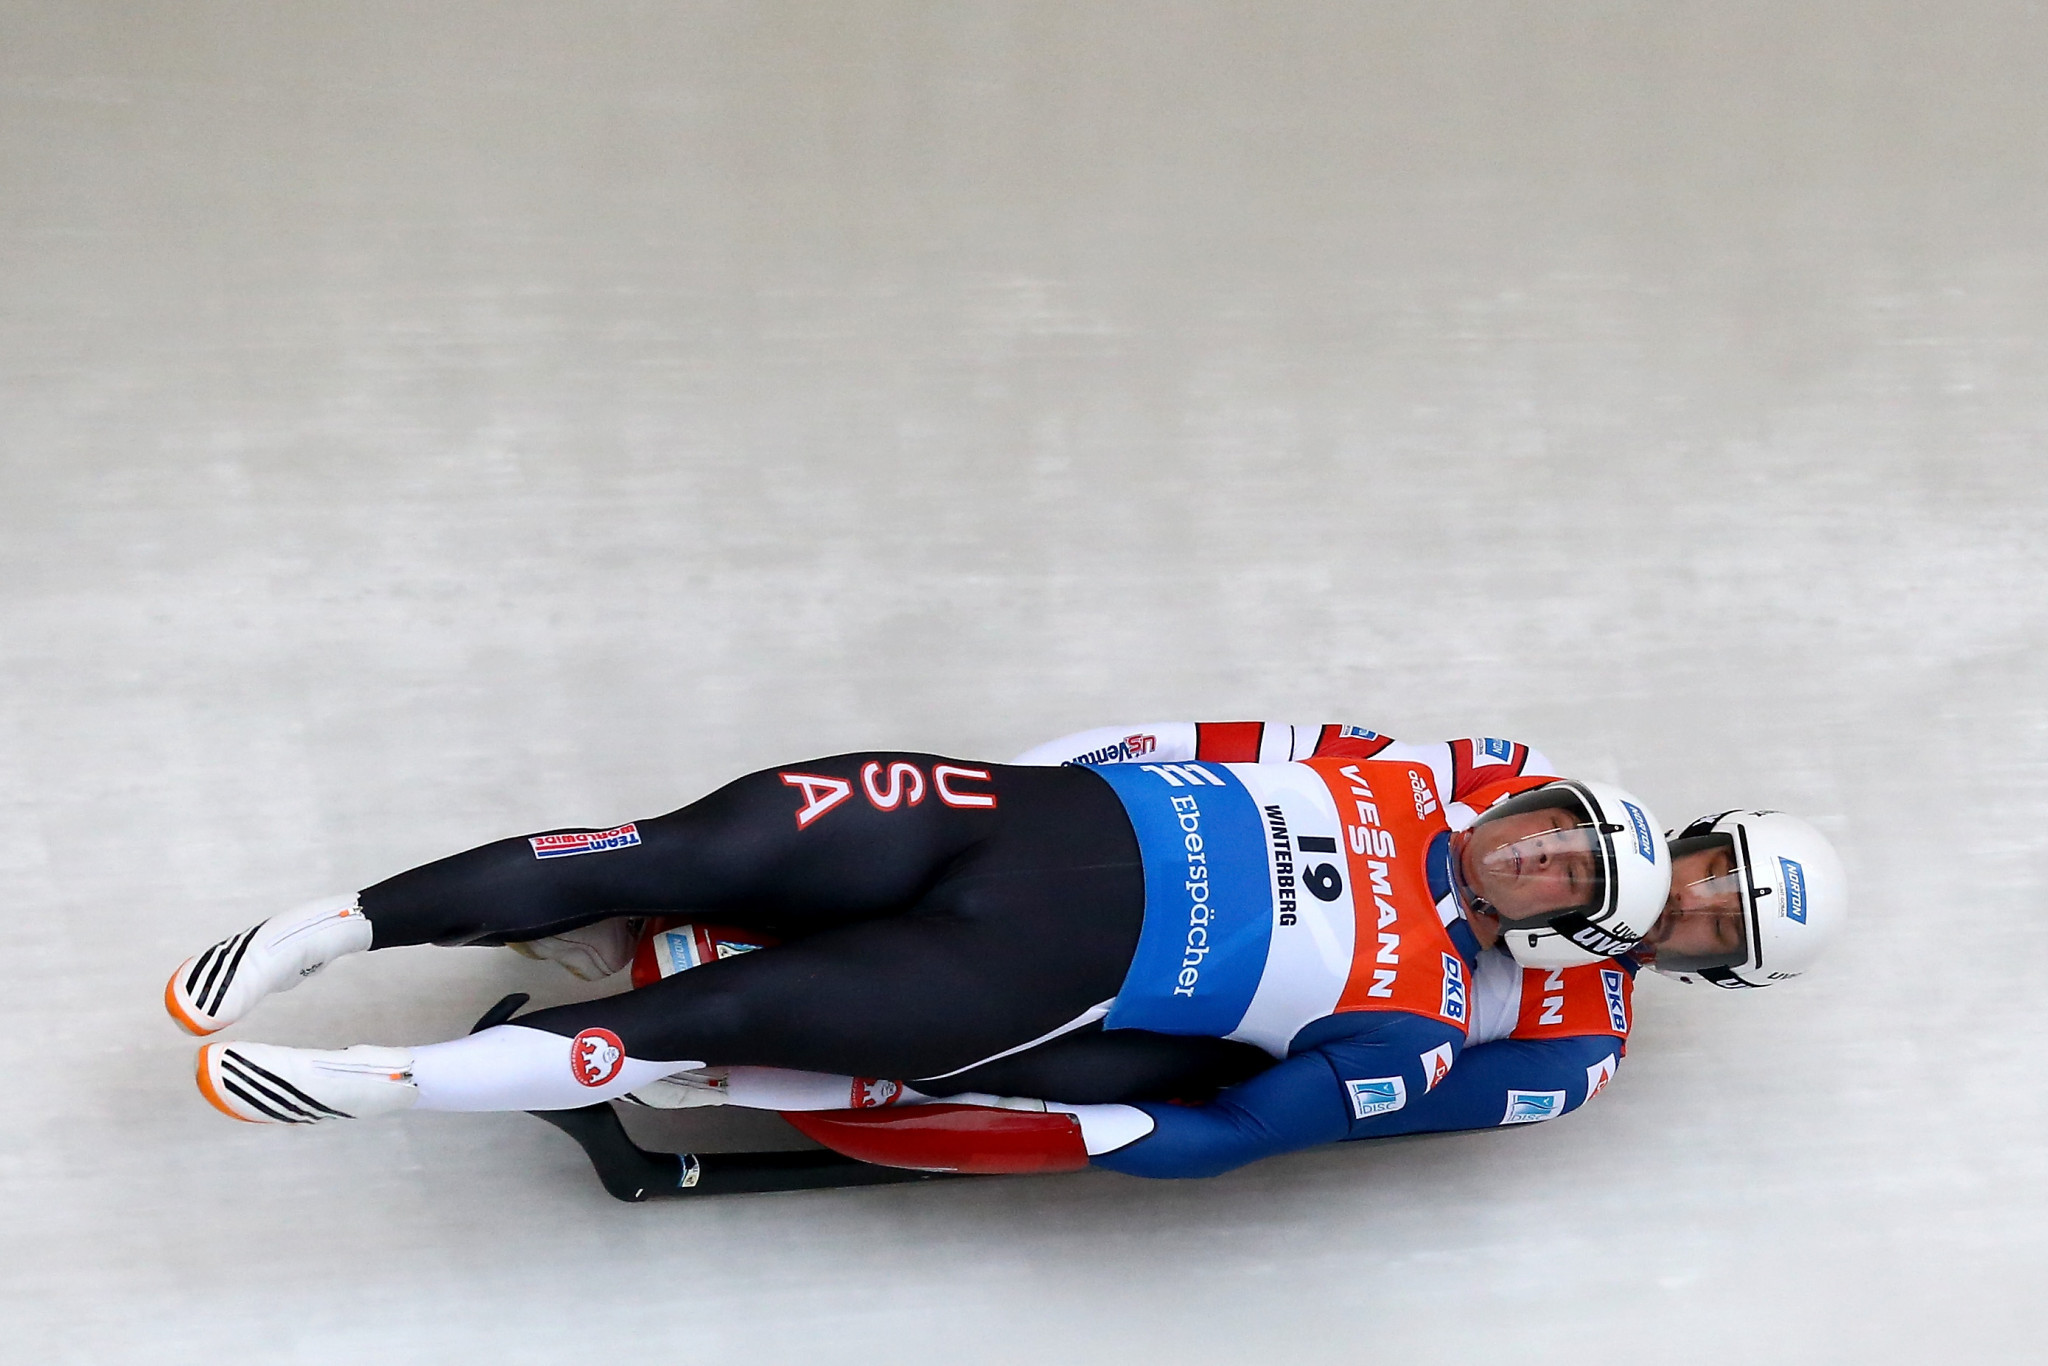 Jayson Terdiman, right, will be involved in the USA Luge slider search event in his hometown in Pennsylvania ©Getty Images